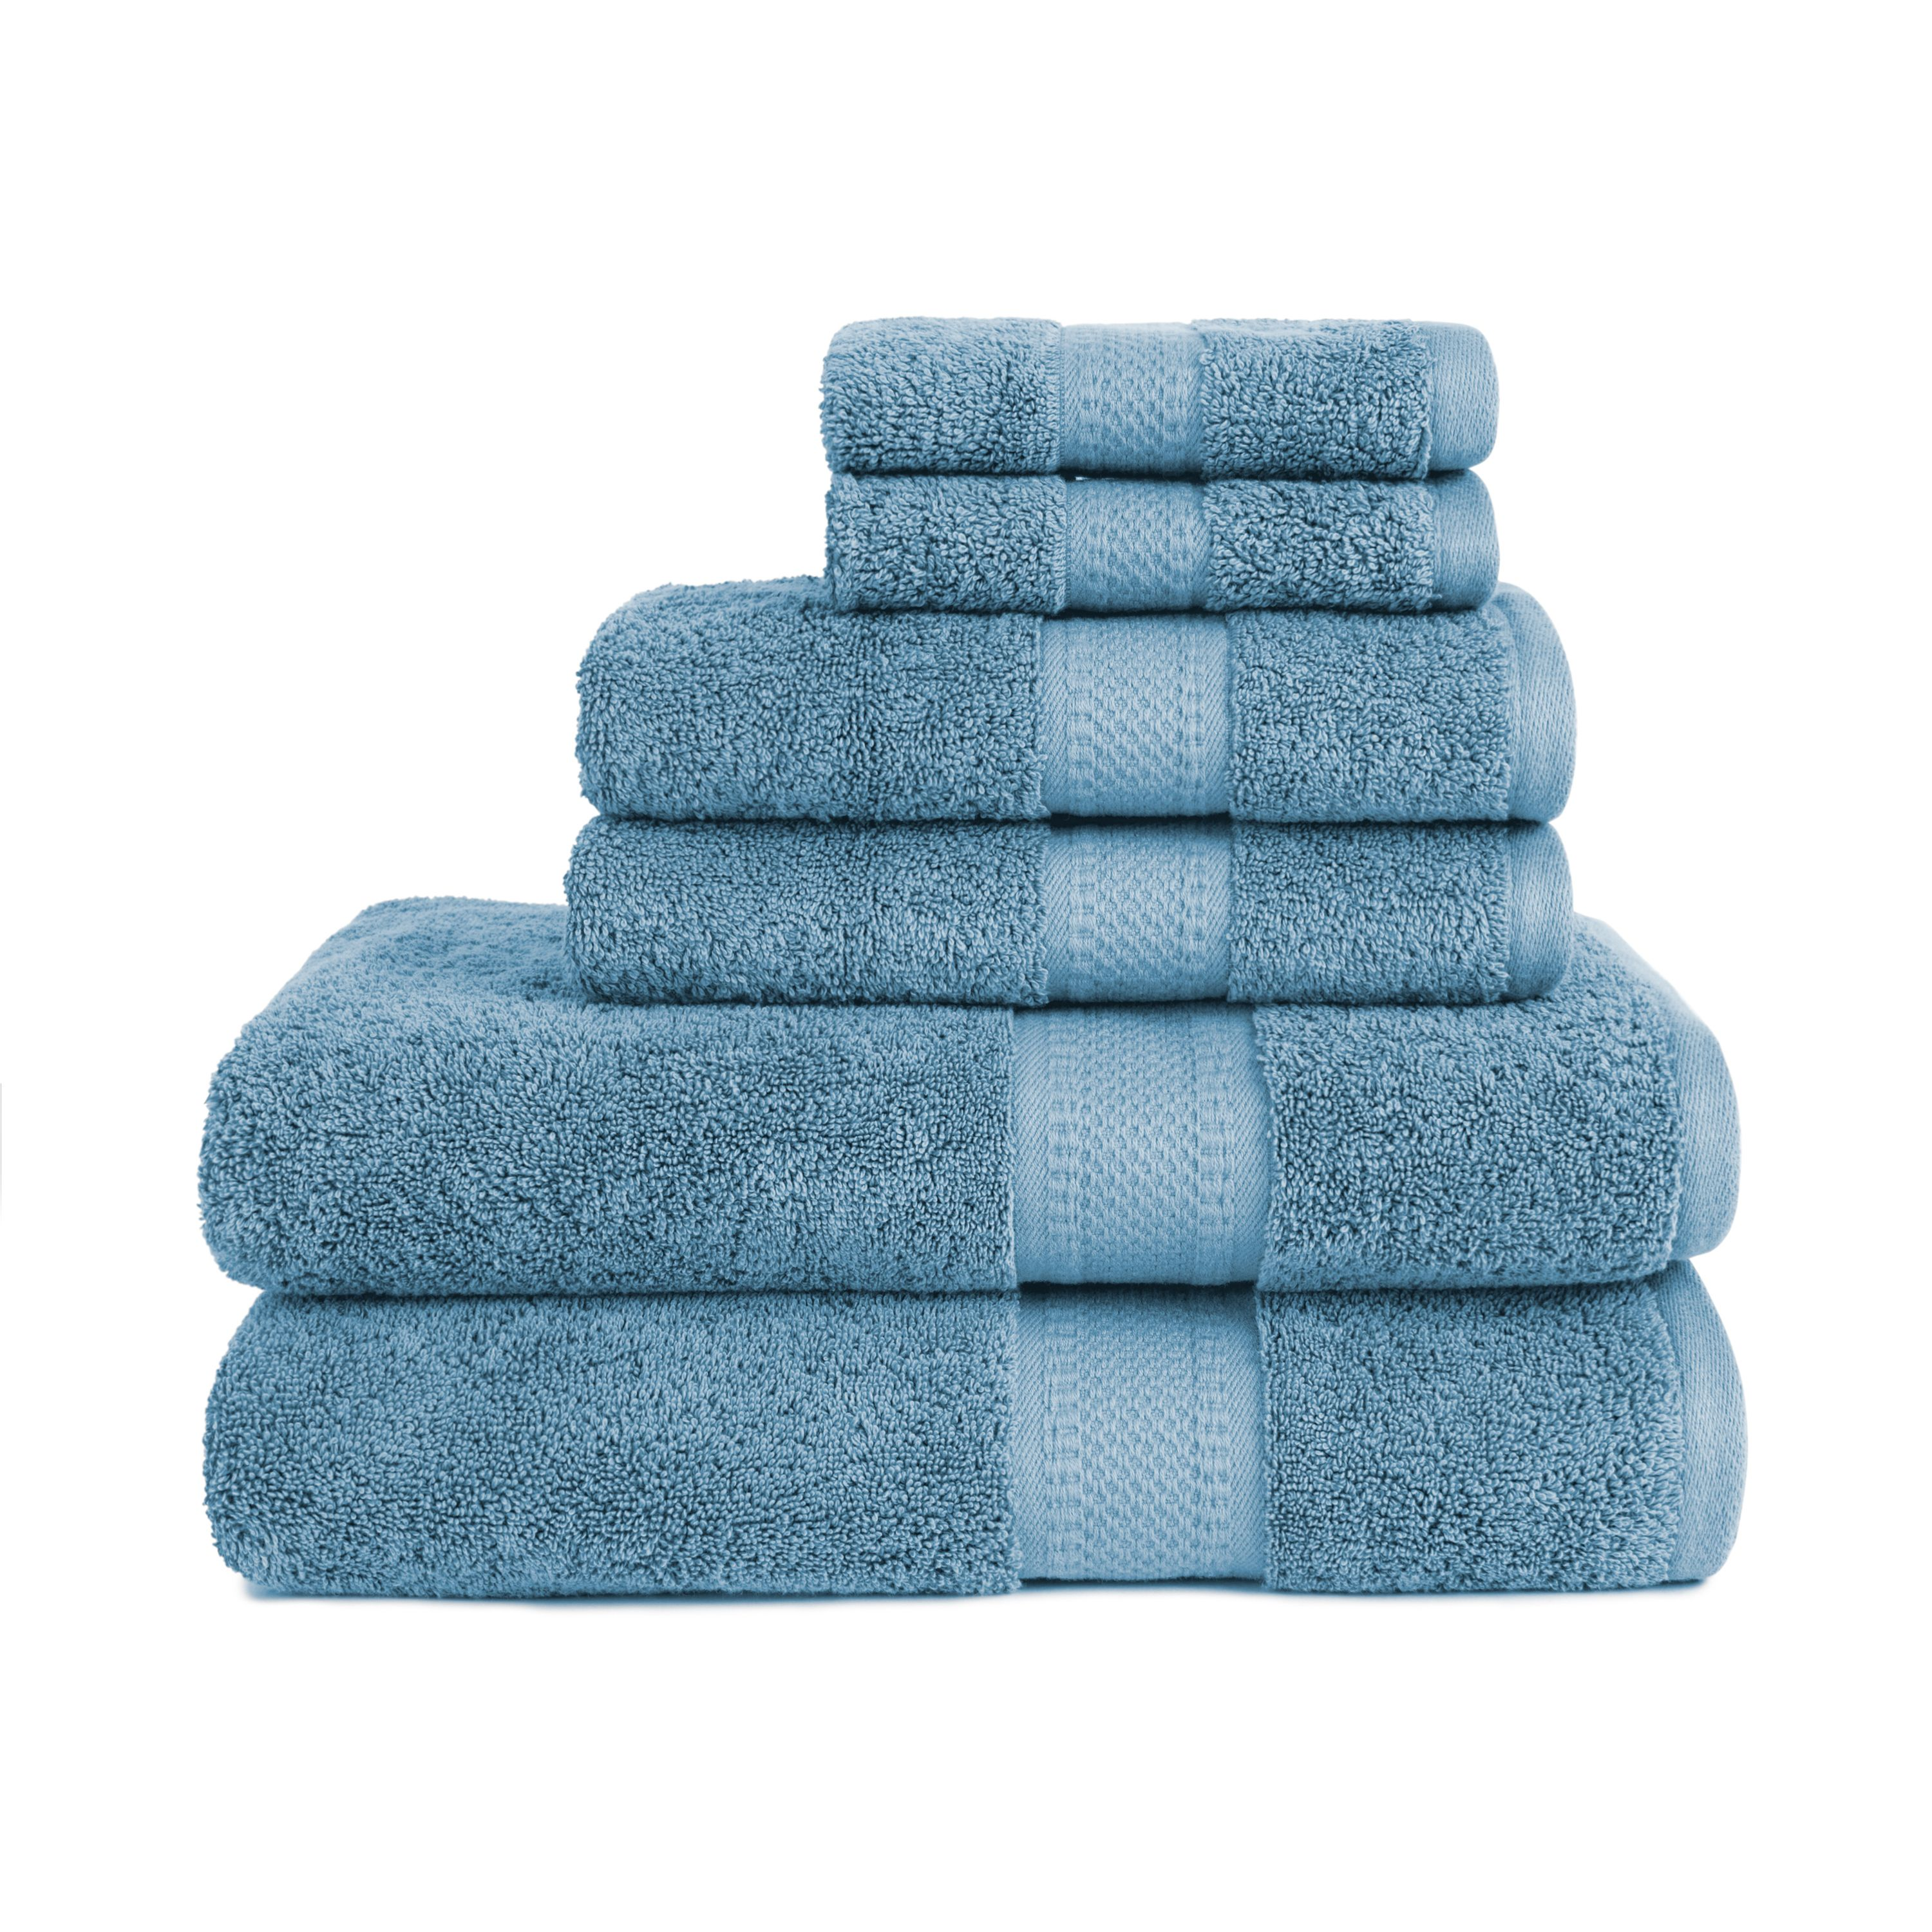 Organic 6 Piece Towel Set in Citadel Blue